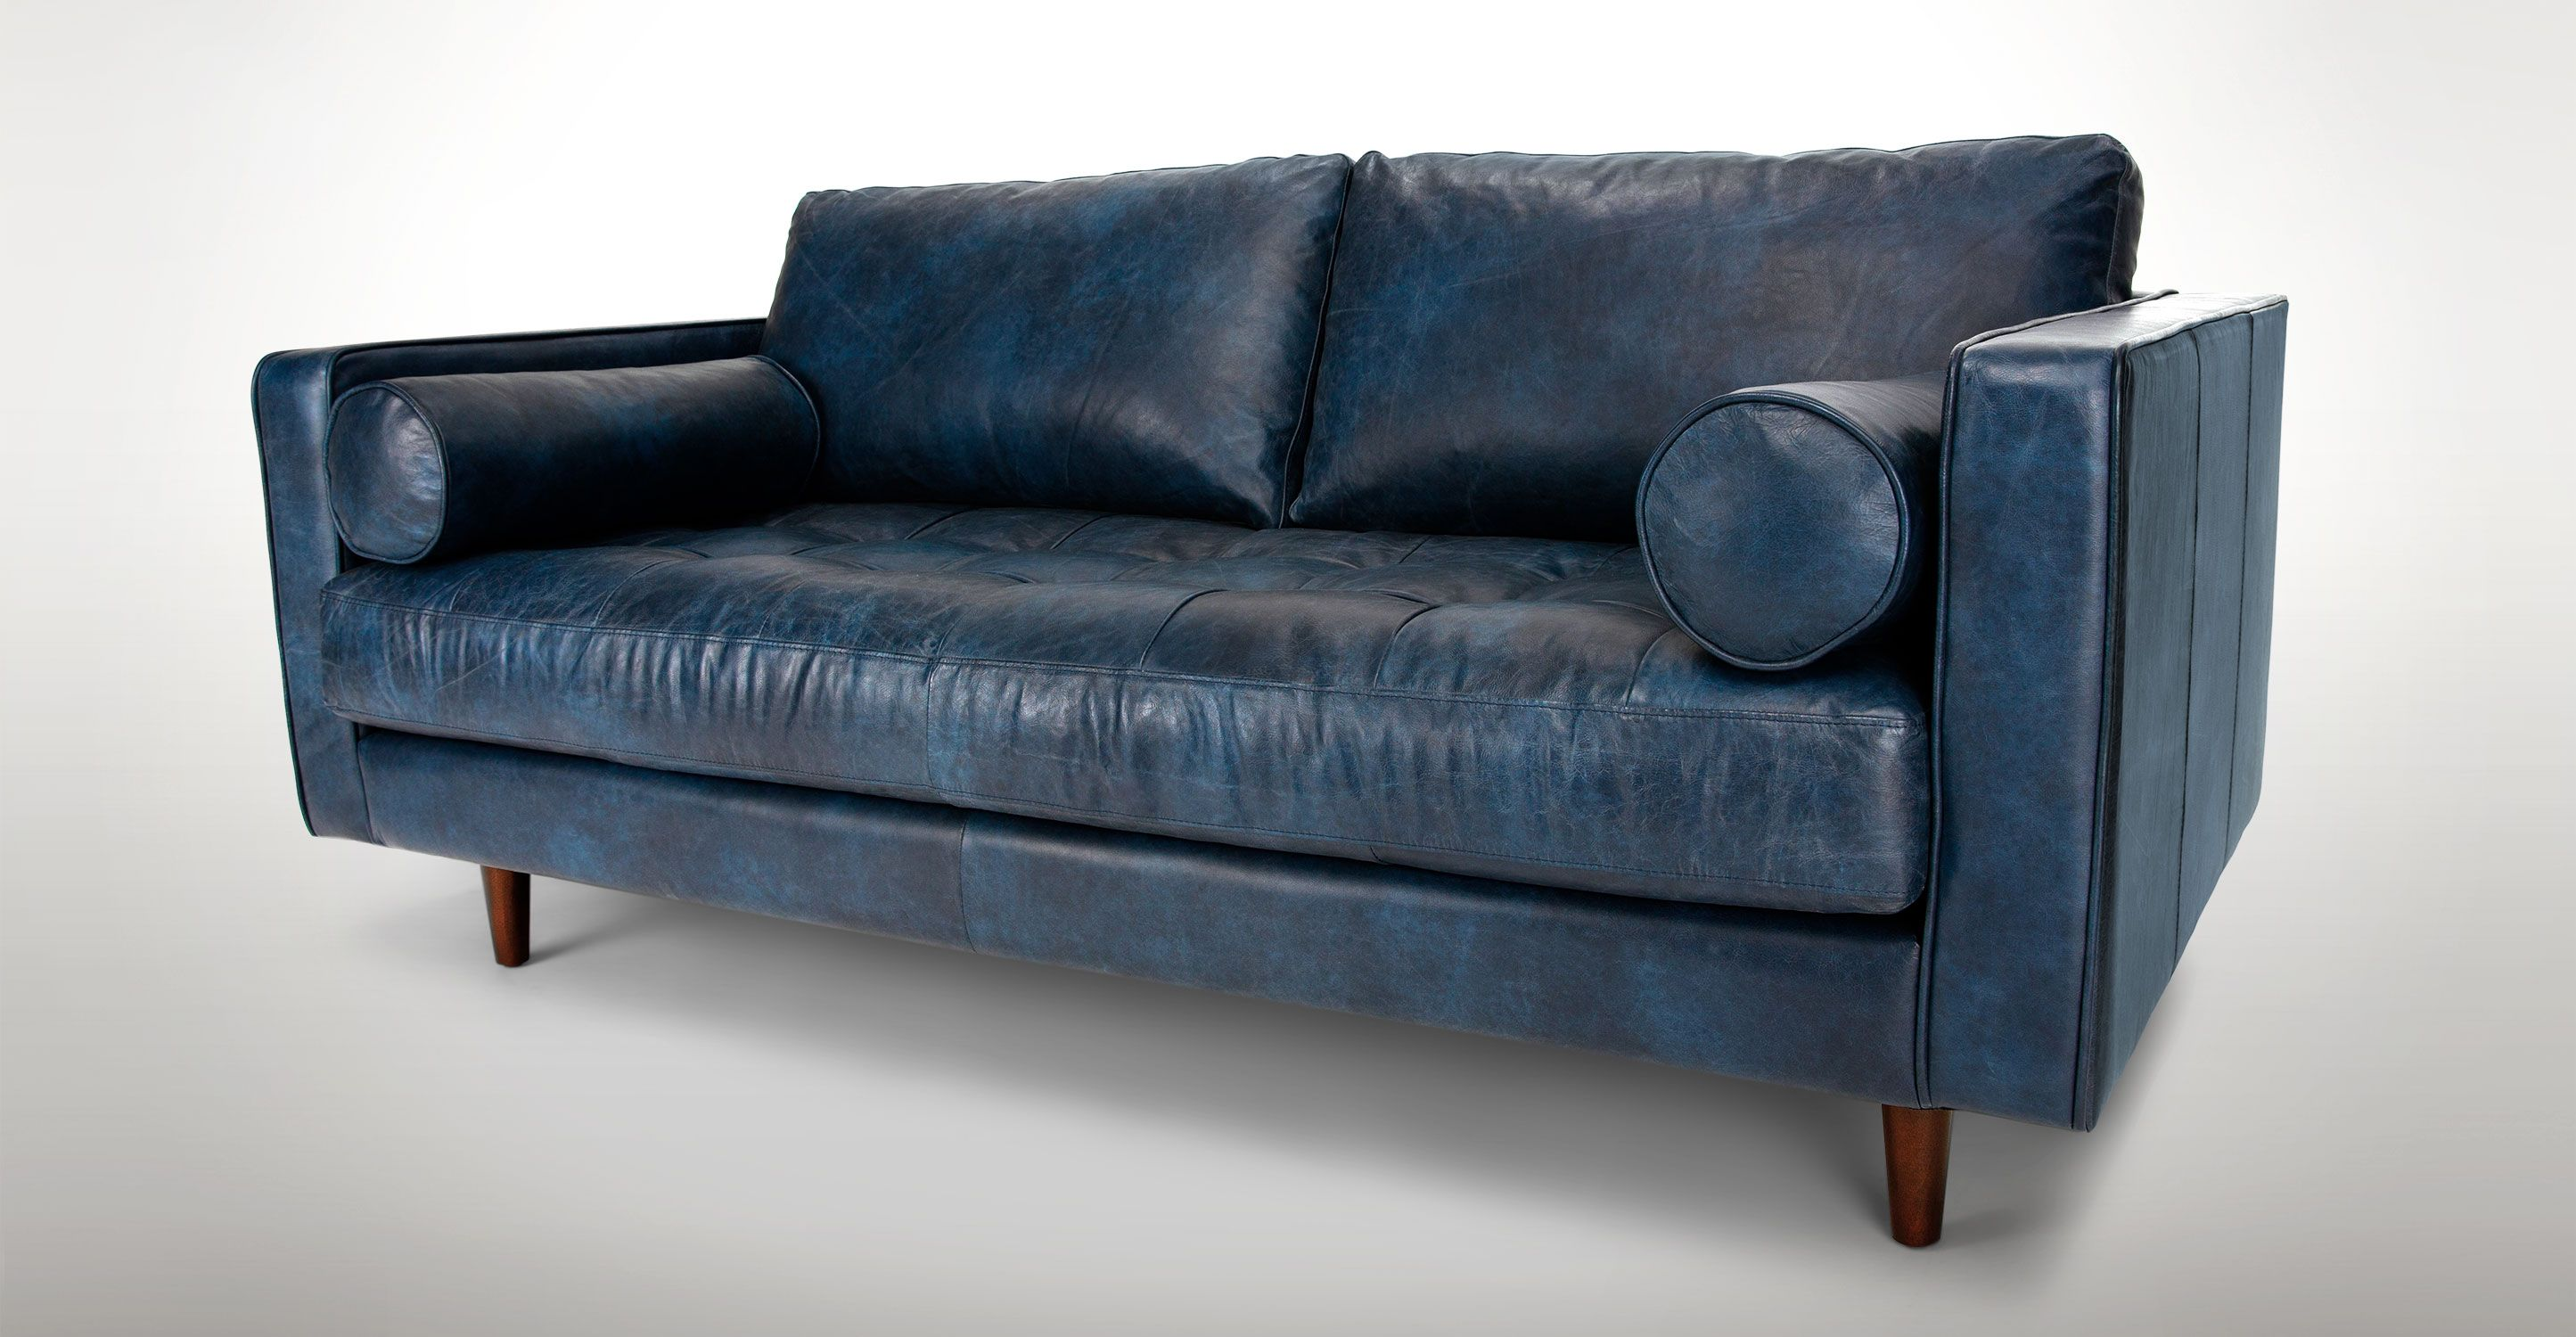 Sven Oxford Blue 72 Sofa Scandinavian Sofa Design Vintage Sofa Leather Sofa